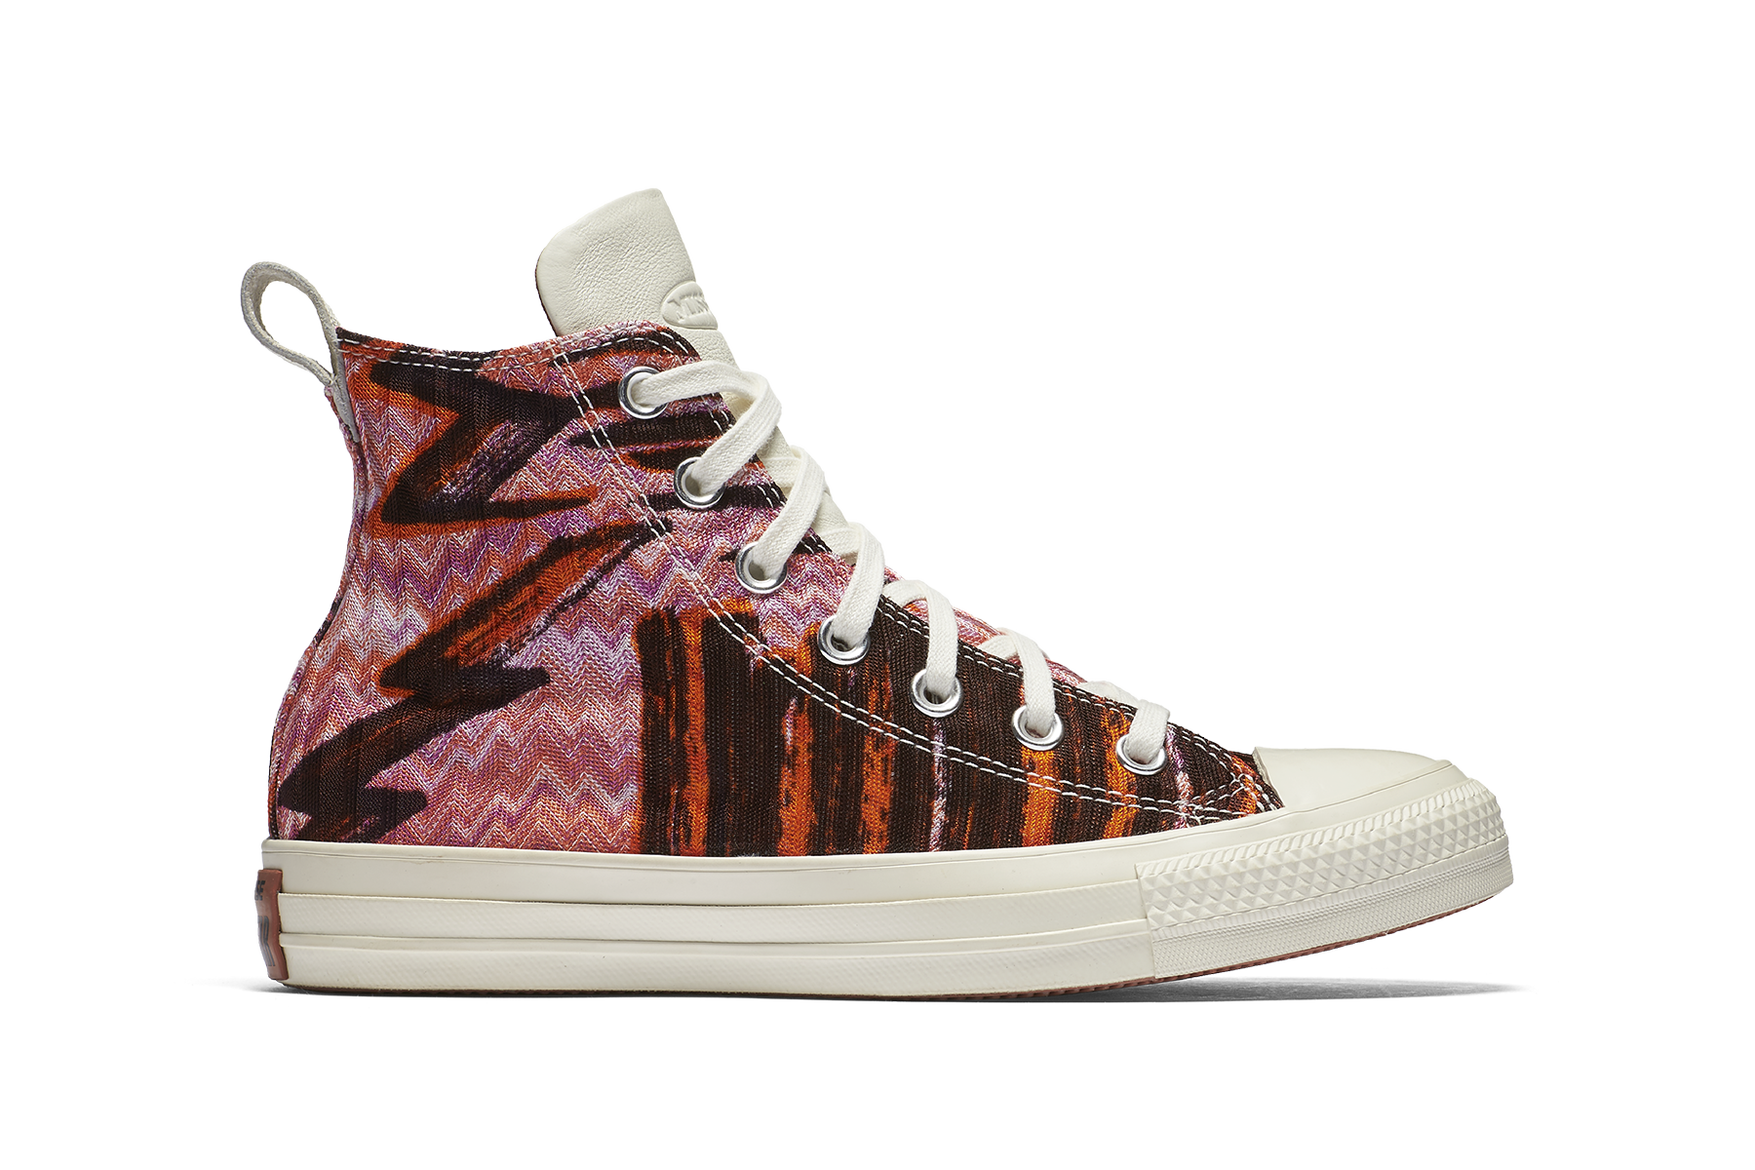 converse-missoni-chuck-taylor-all-star-high-top-8.png